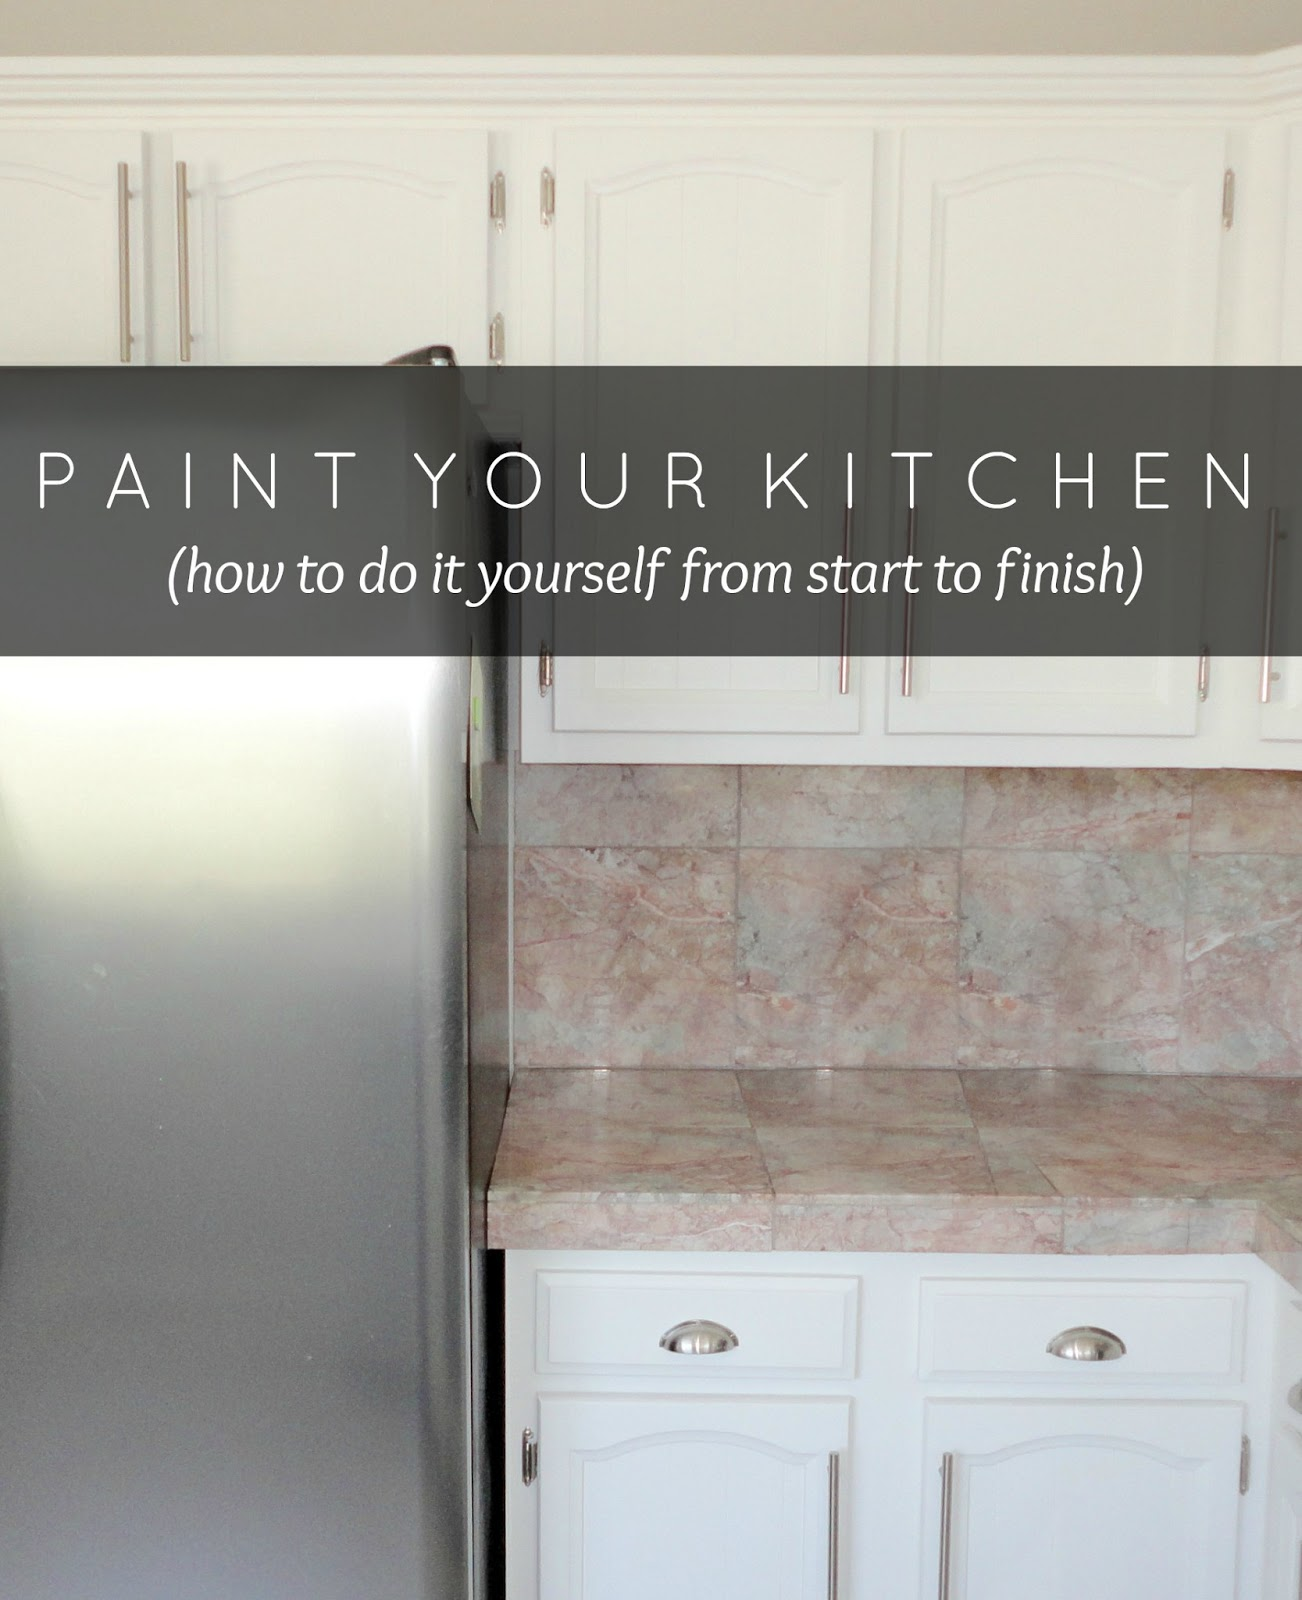 How To Paint Kitchen Cabinets In 10 Easy Steps Gallery